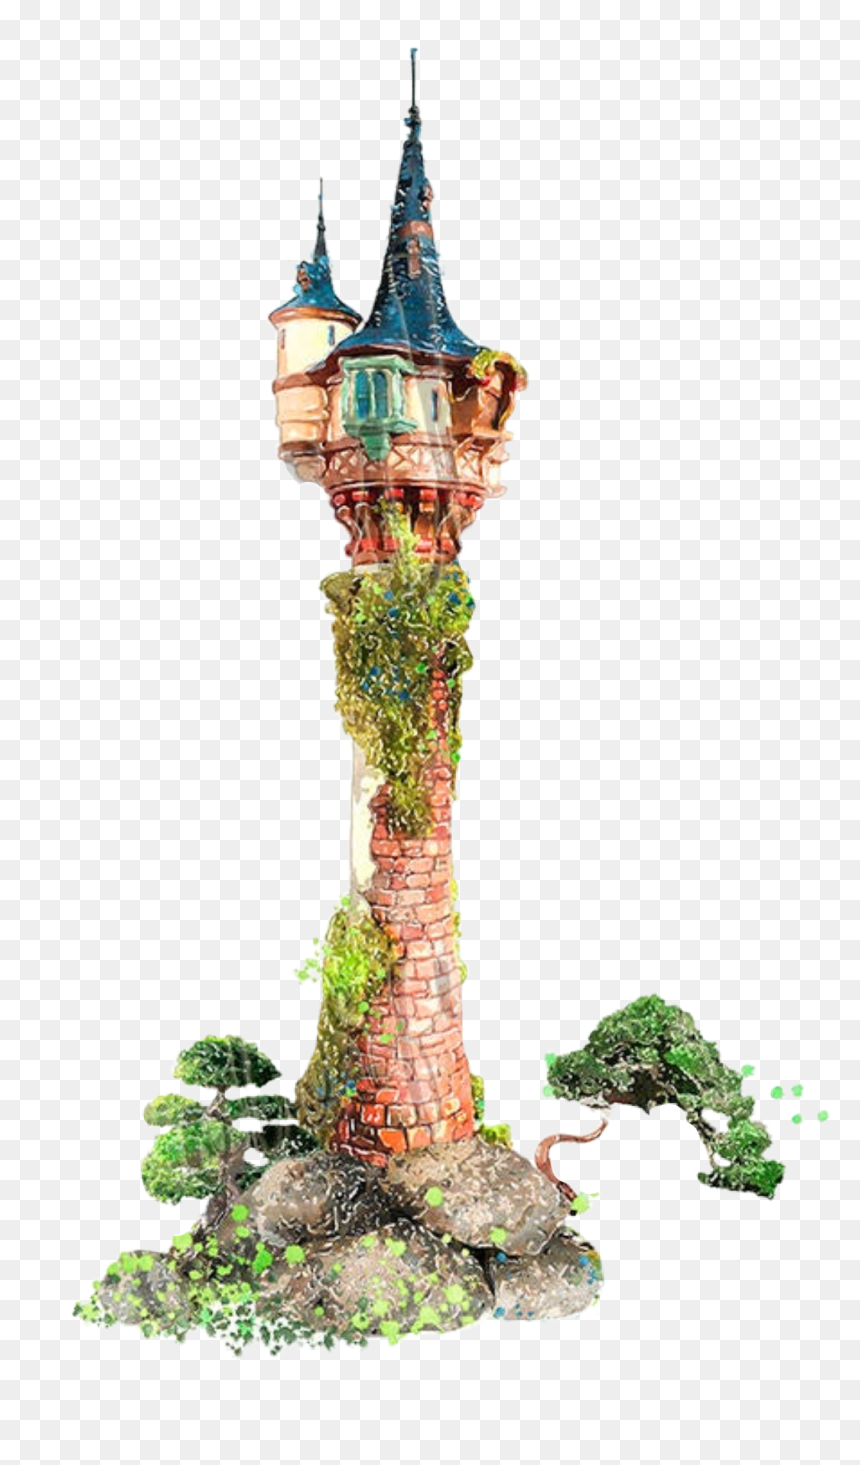 Watercolor Tower Rapunzel Castle Princess Fantasy Transparent Rapunzel Tower Png Png Download Vhv